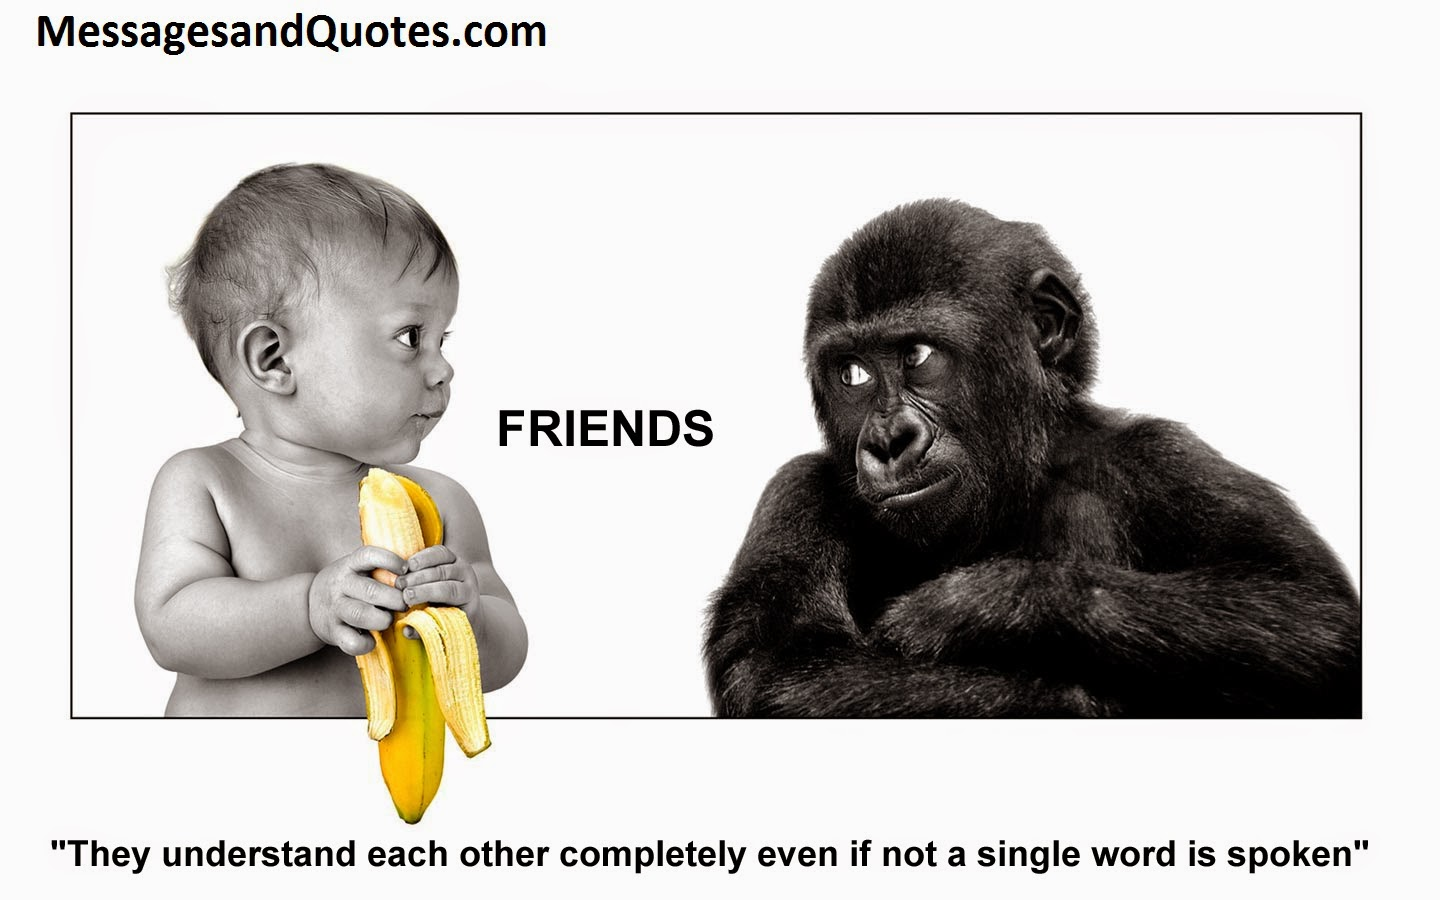 famous quotes and messages on friendship